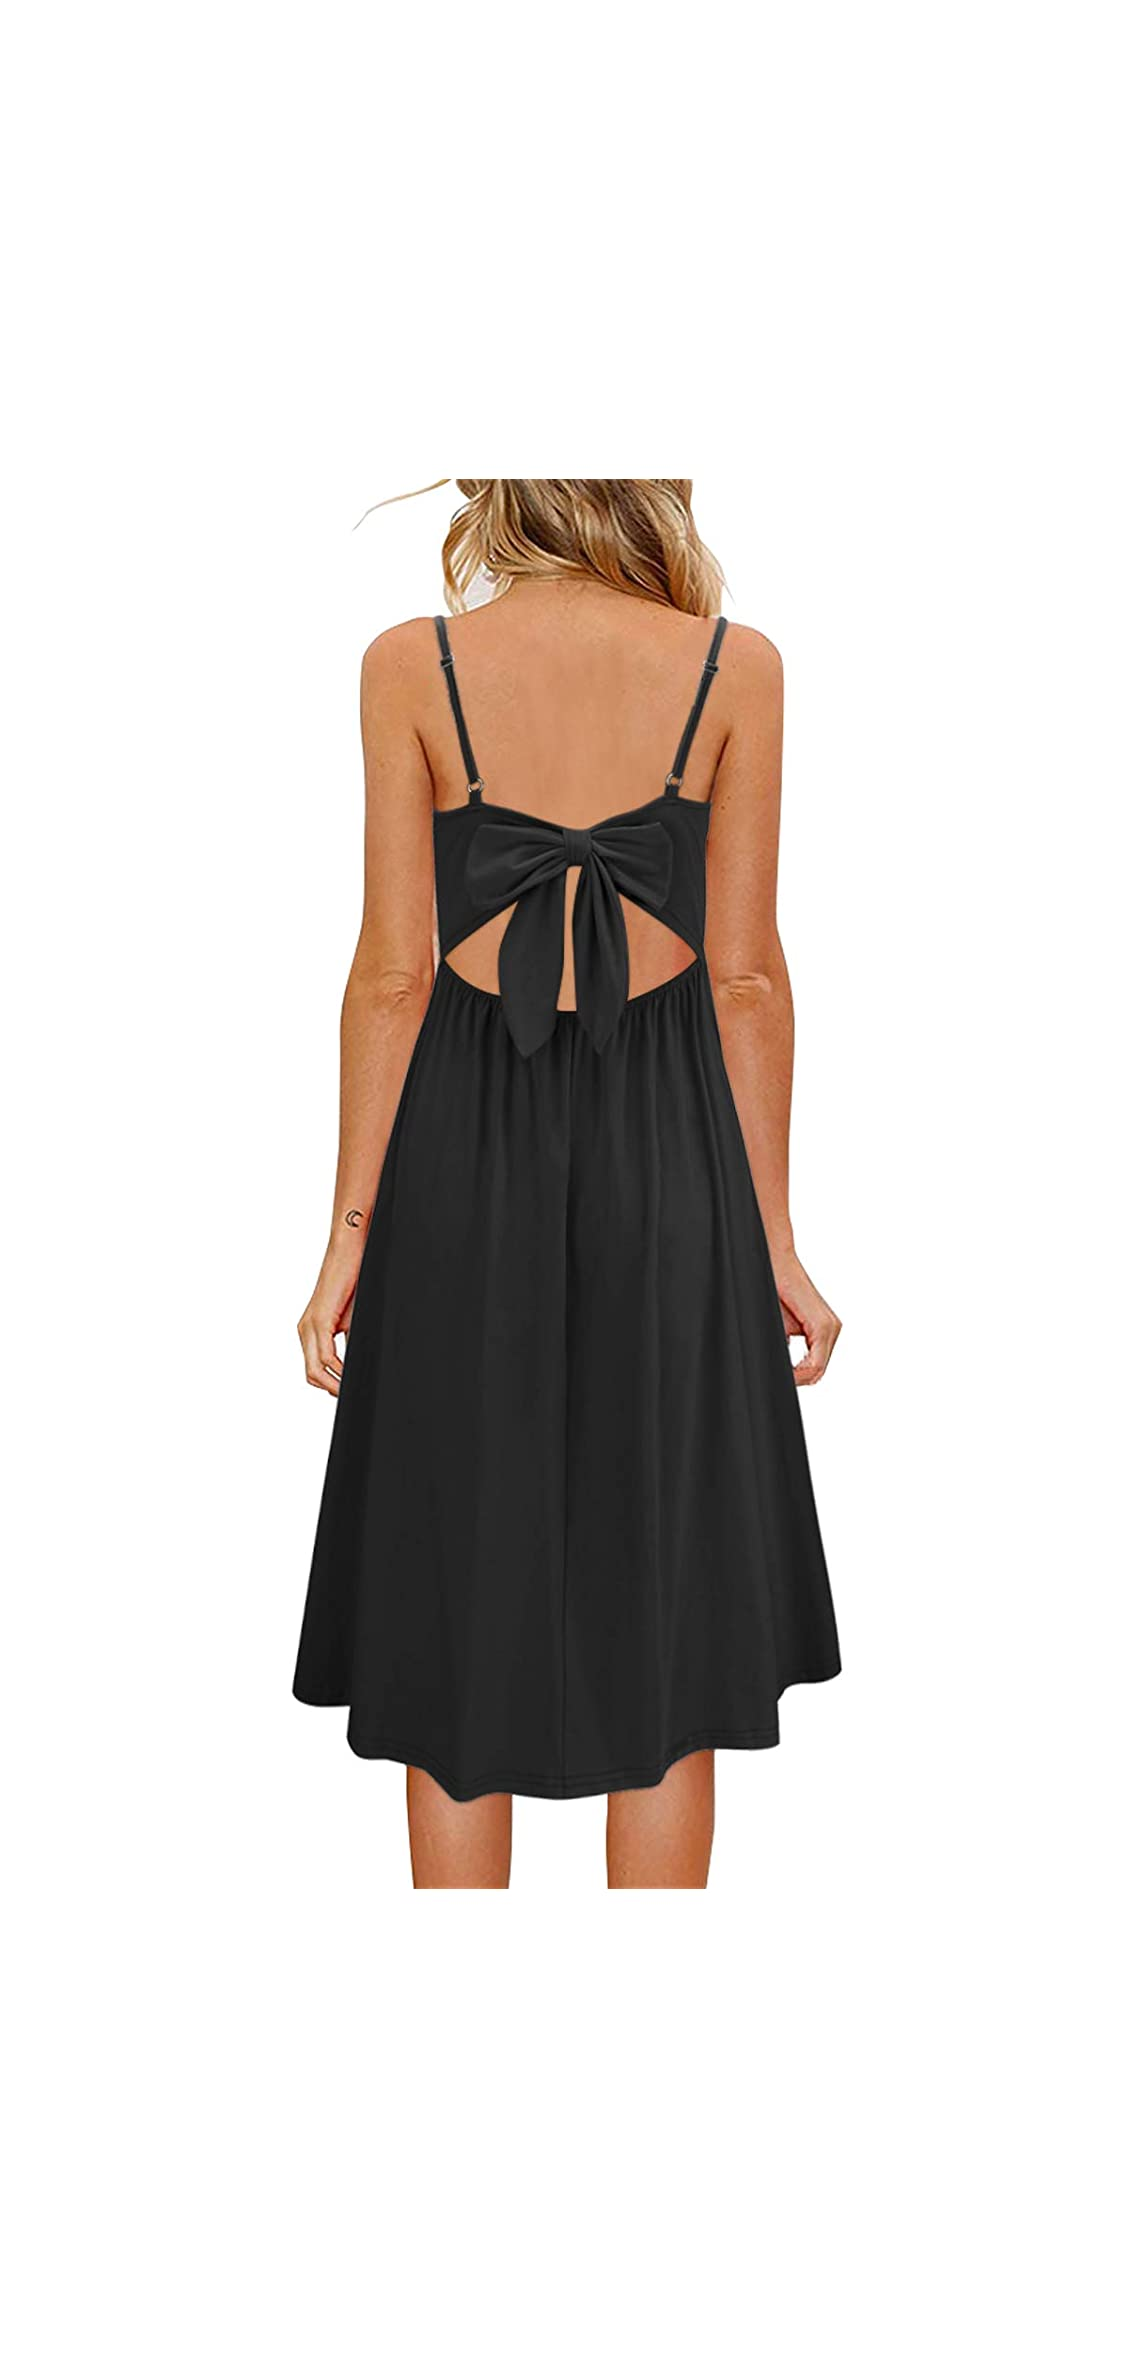 Womens Summer Backless Adjustable Spaghetti Strap Tie Back